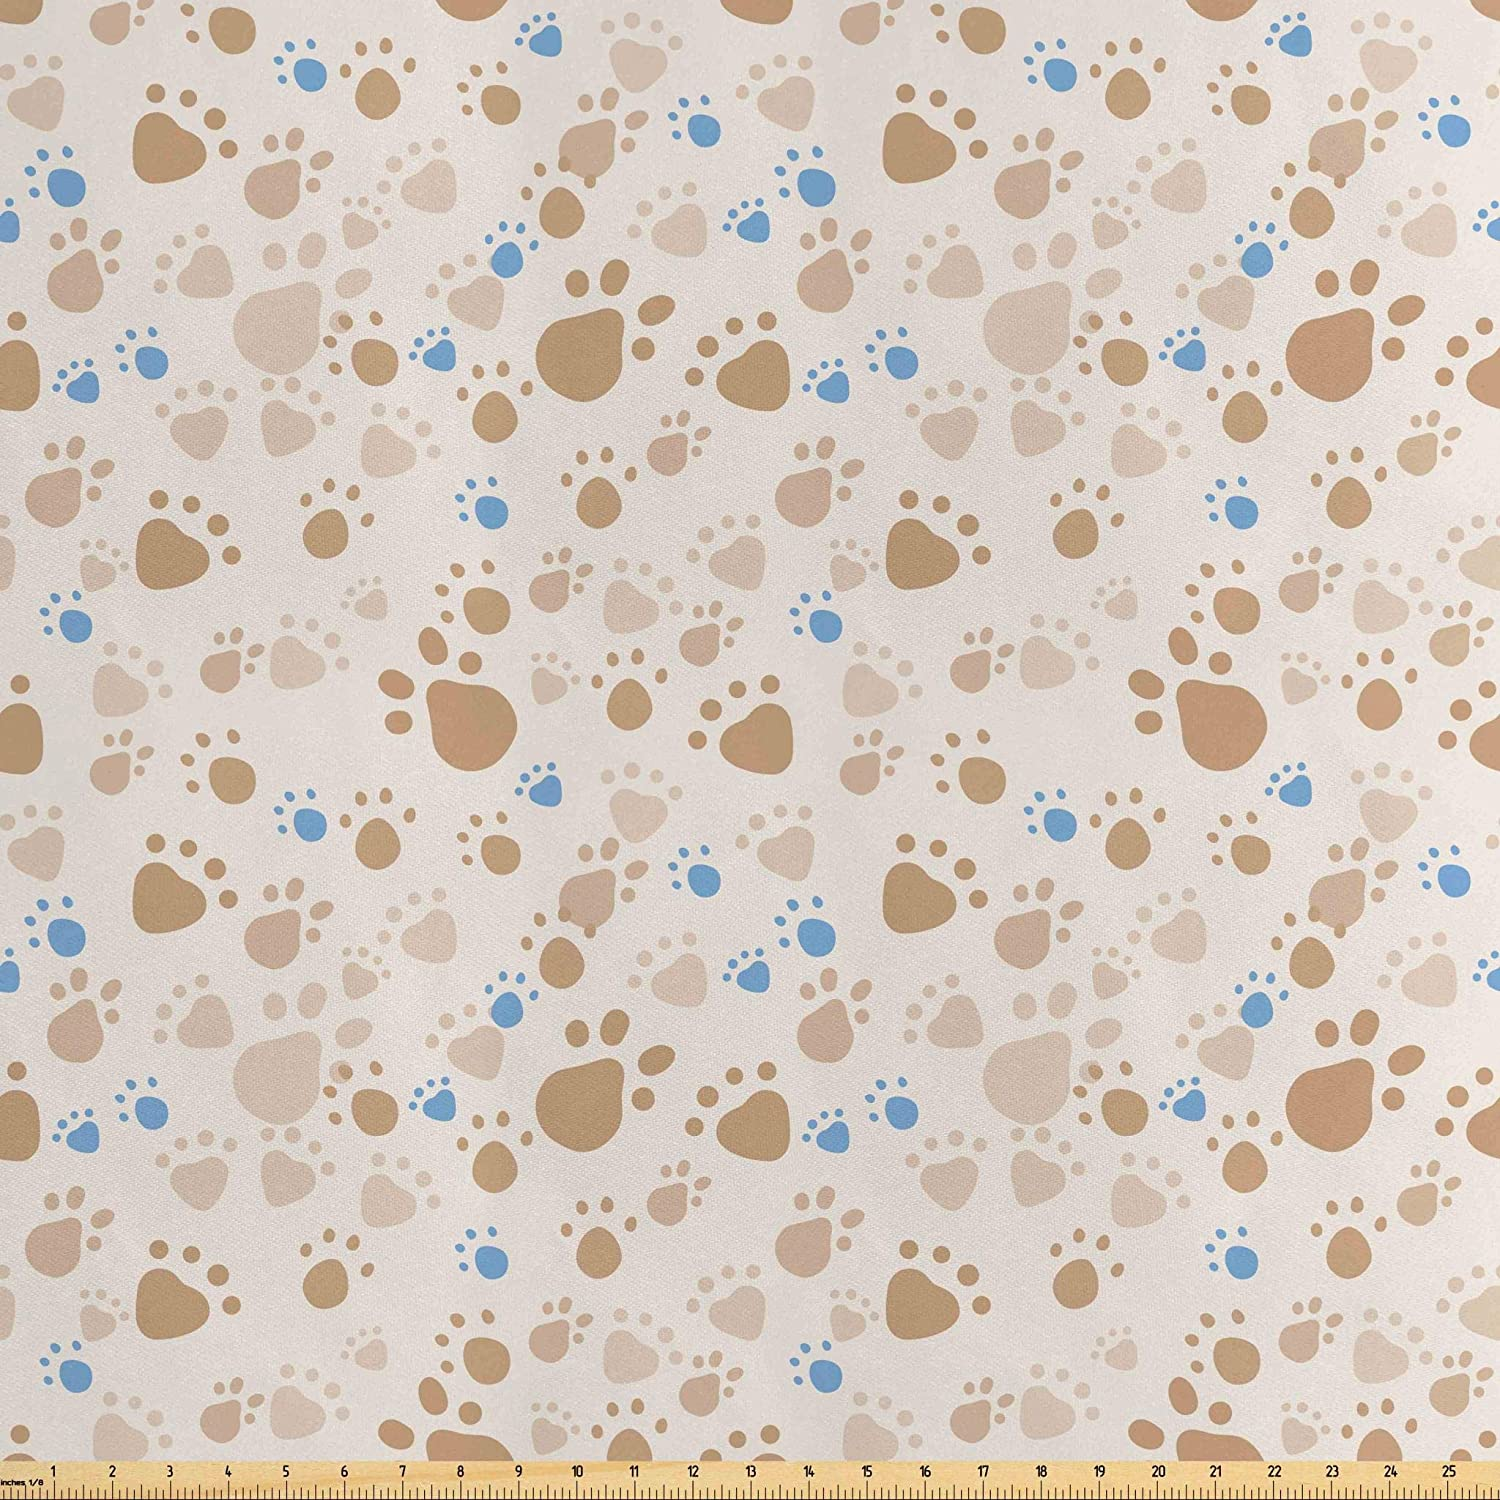 Lunarable Cream Fabric by The Yard, Pattern with Animal Footprints Paws Domestic Pets Dogs and Cats Wildlife Walk, Decorative Satin Fabric for Home Textiles and Crafts, 3 Yards, Tan Blue